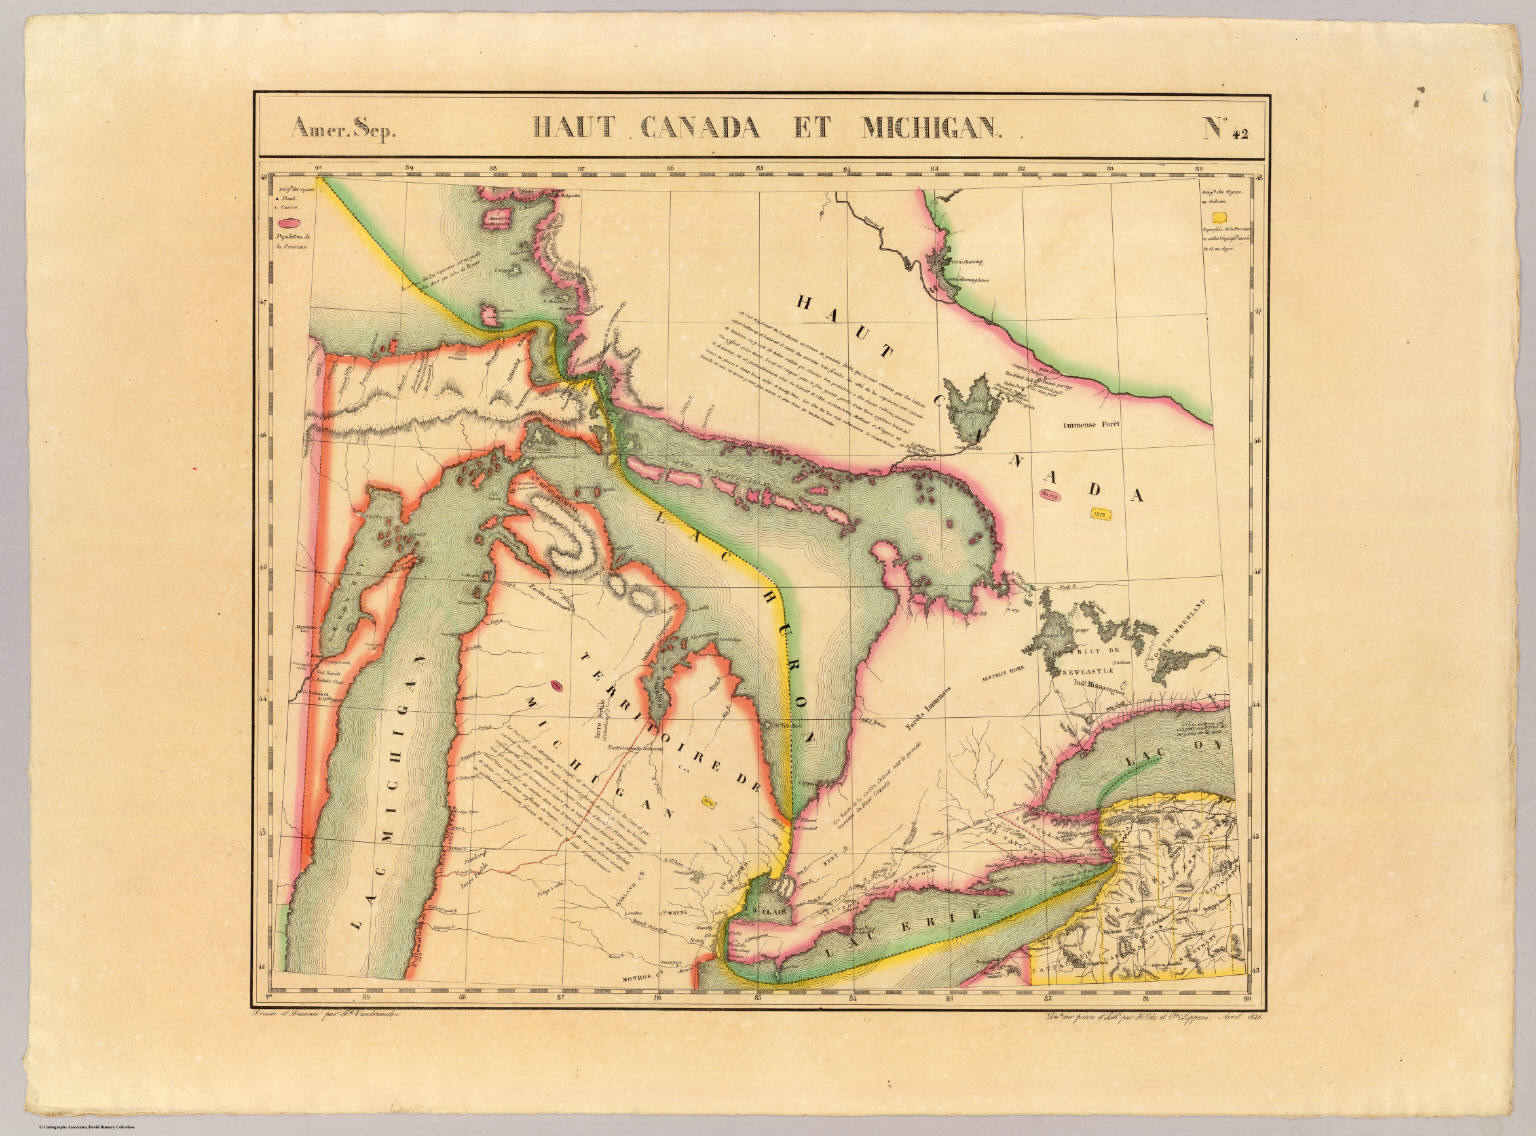 Haut Canada, Michigan. Amer. Sep. 42. - David Rumsey Historical Map ...